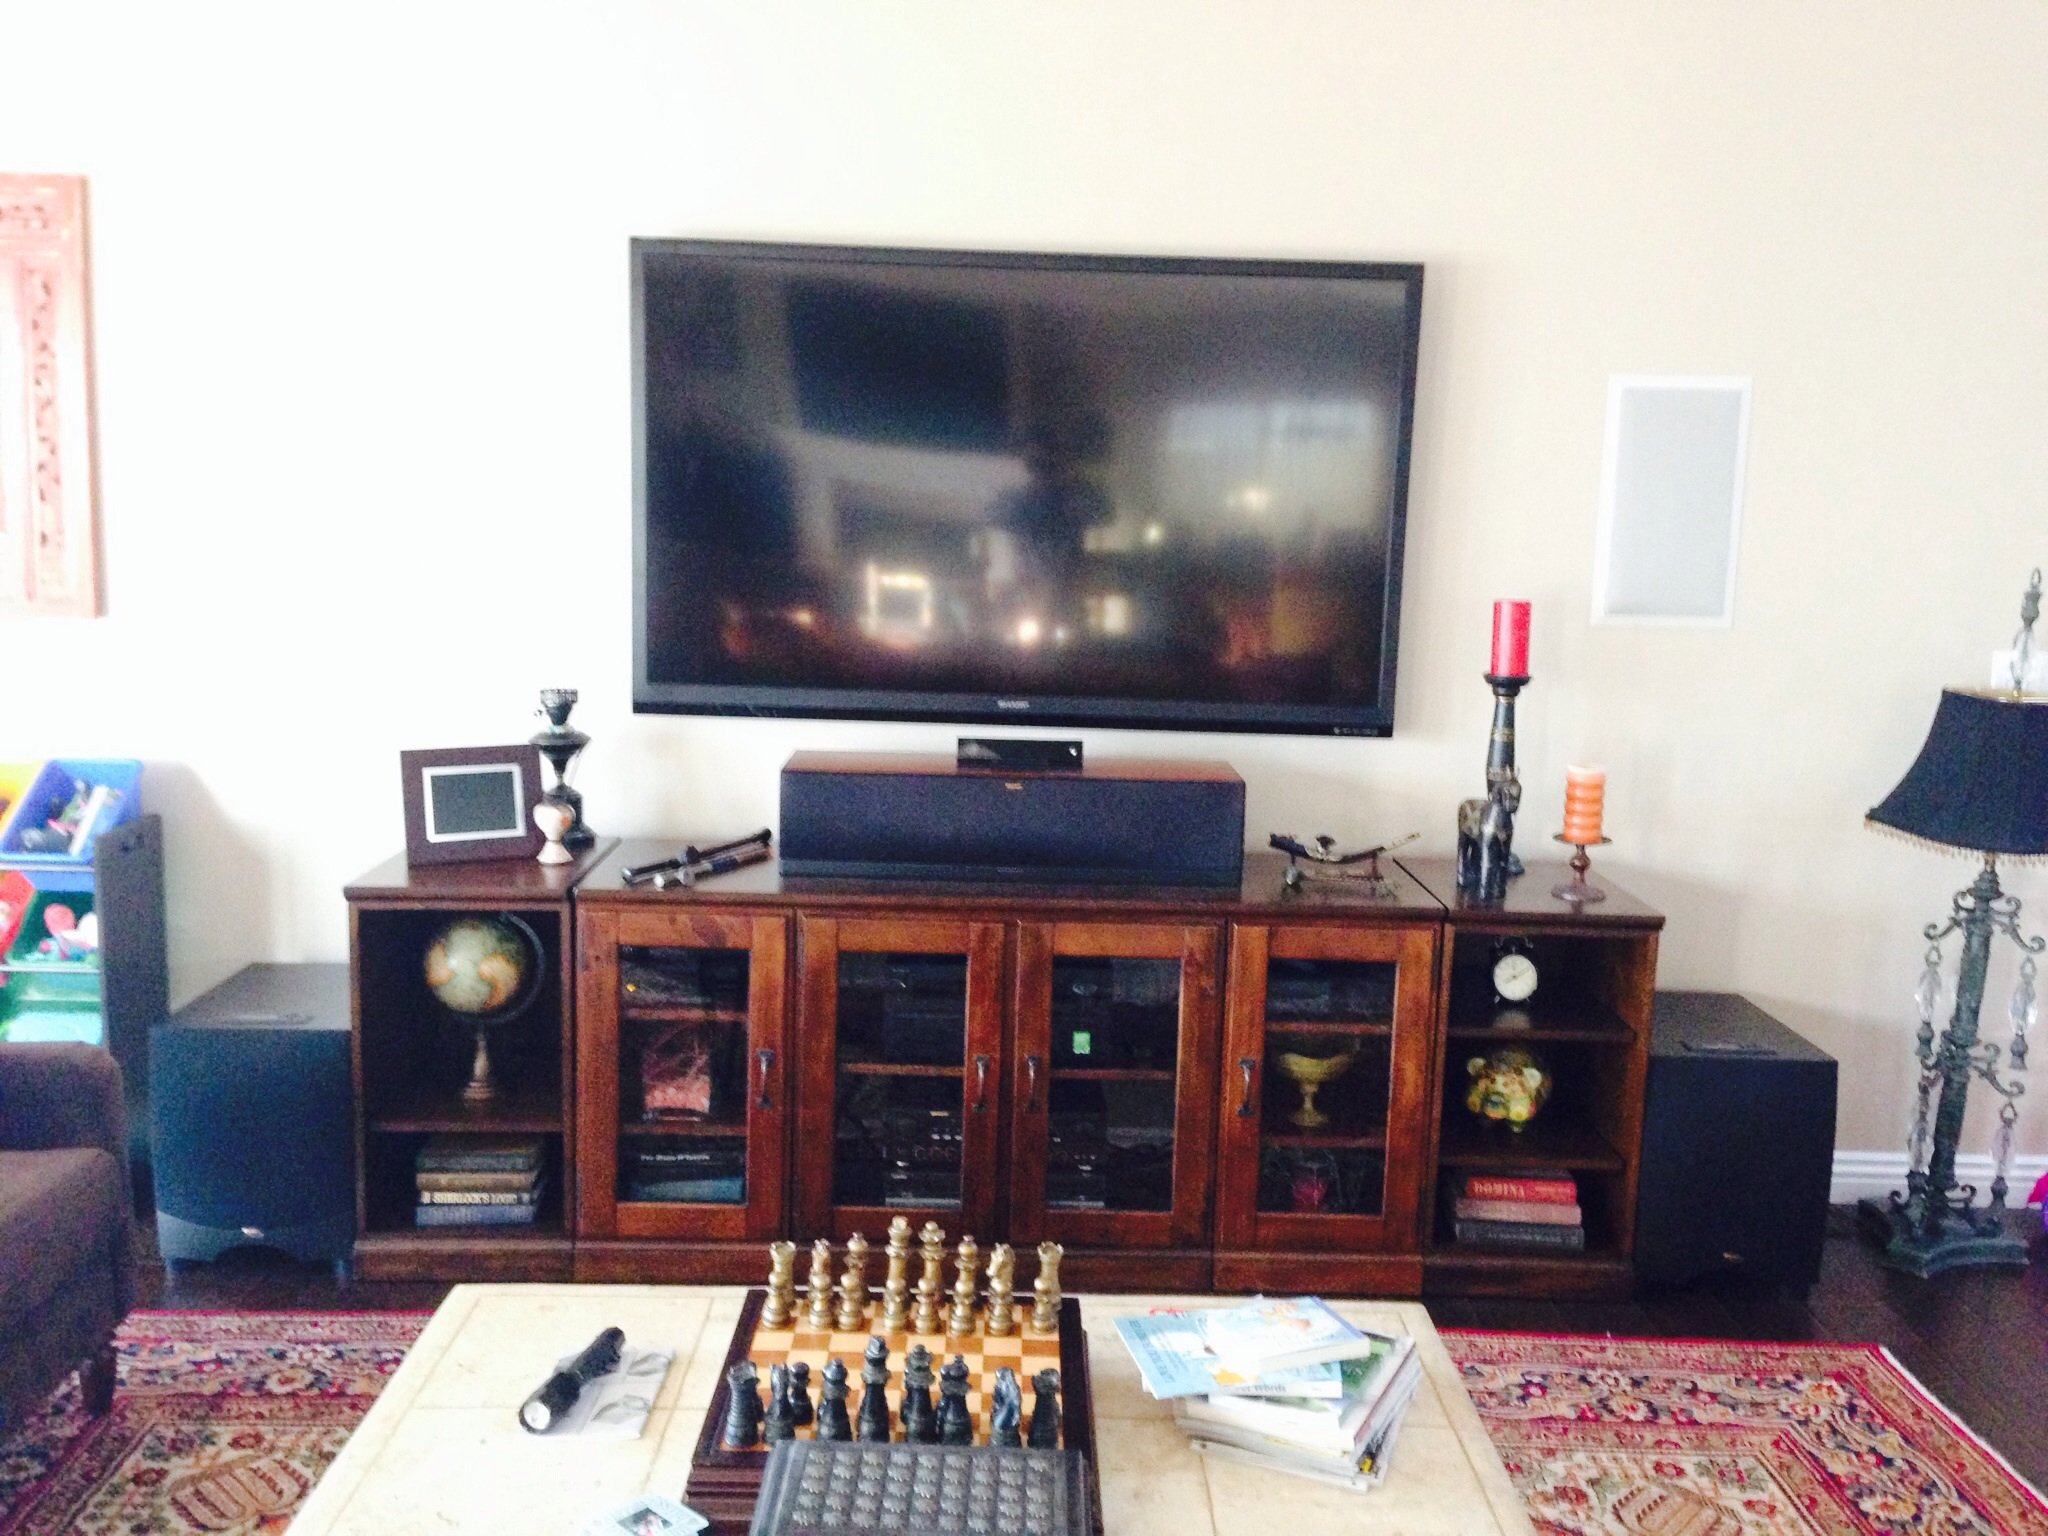 klipsch 6504. i know subs don\u0027t matter when it comes to tone/timbre but also bought 2 klipsch rw12 d for 250 a pop. too cheap couldn\u0027t refuse. 6504 p